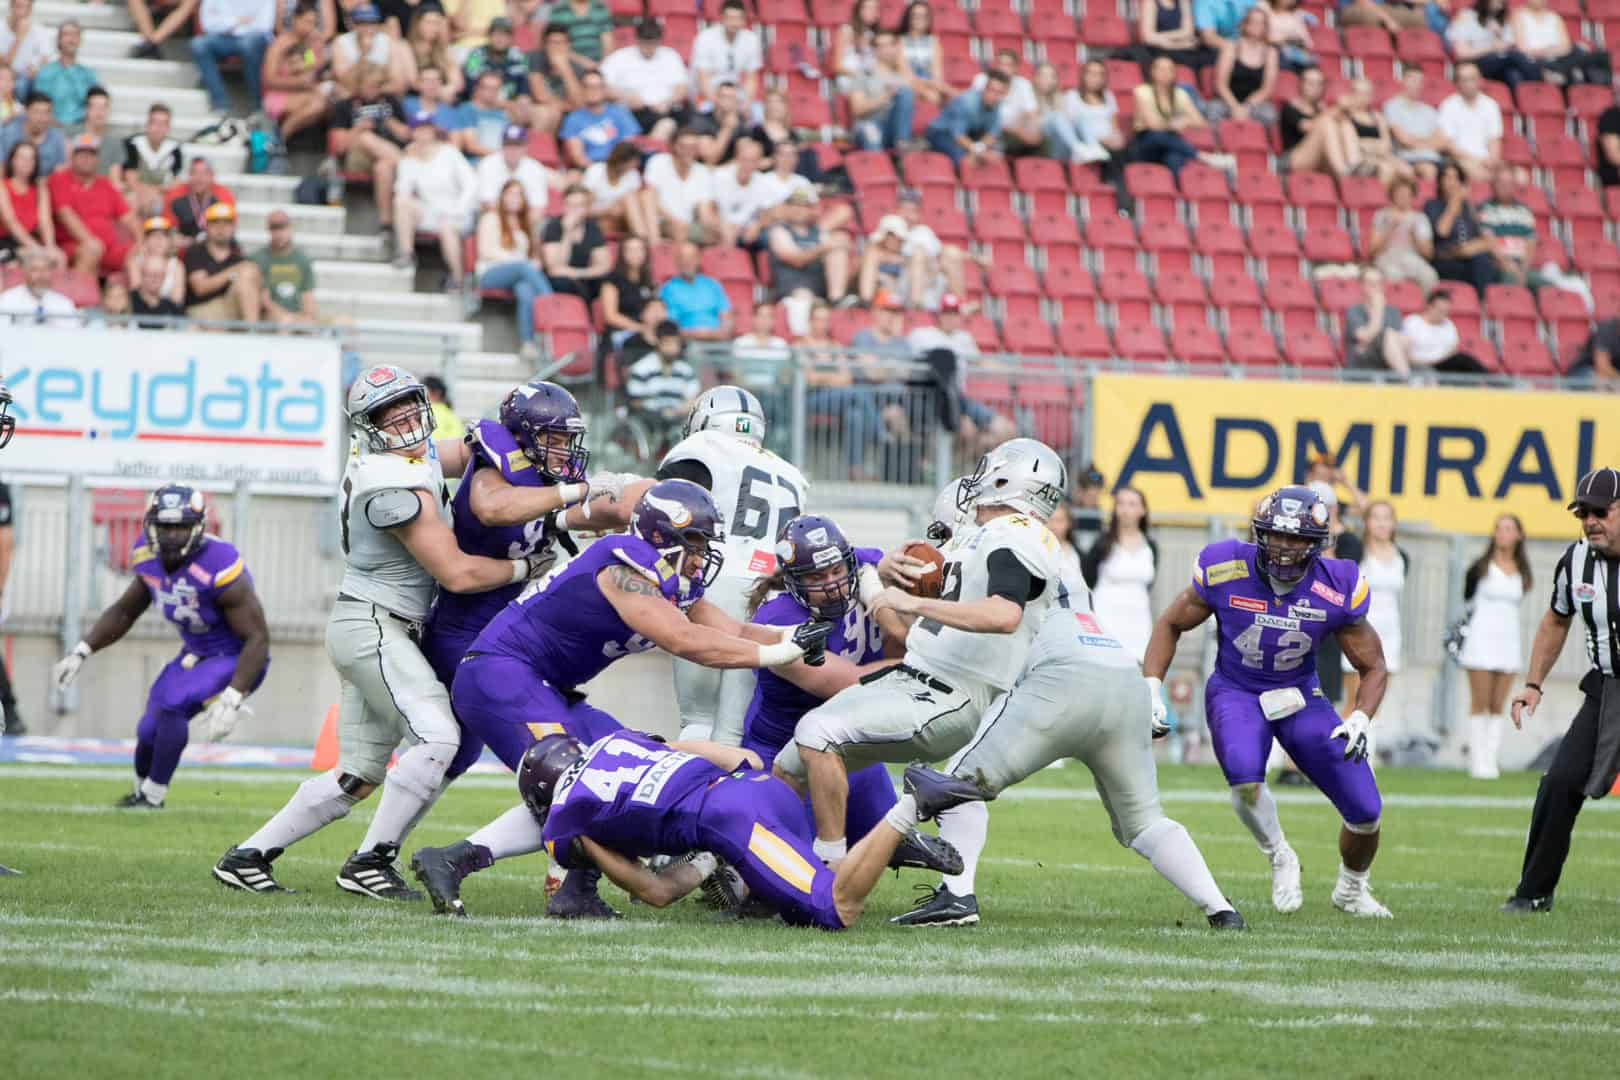 Dacia Vikings vs. Swarco Raiders Foto ©Andreas Bischof